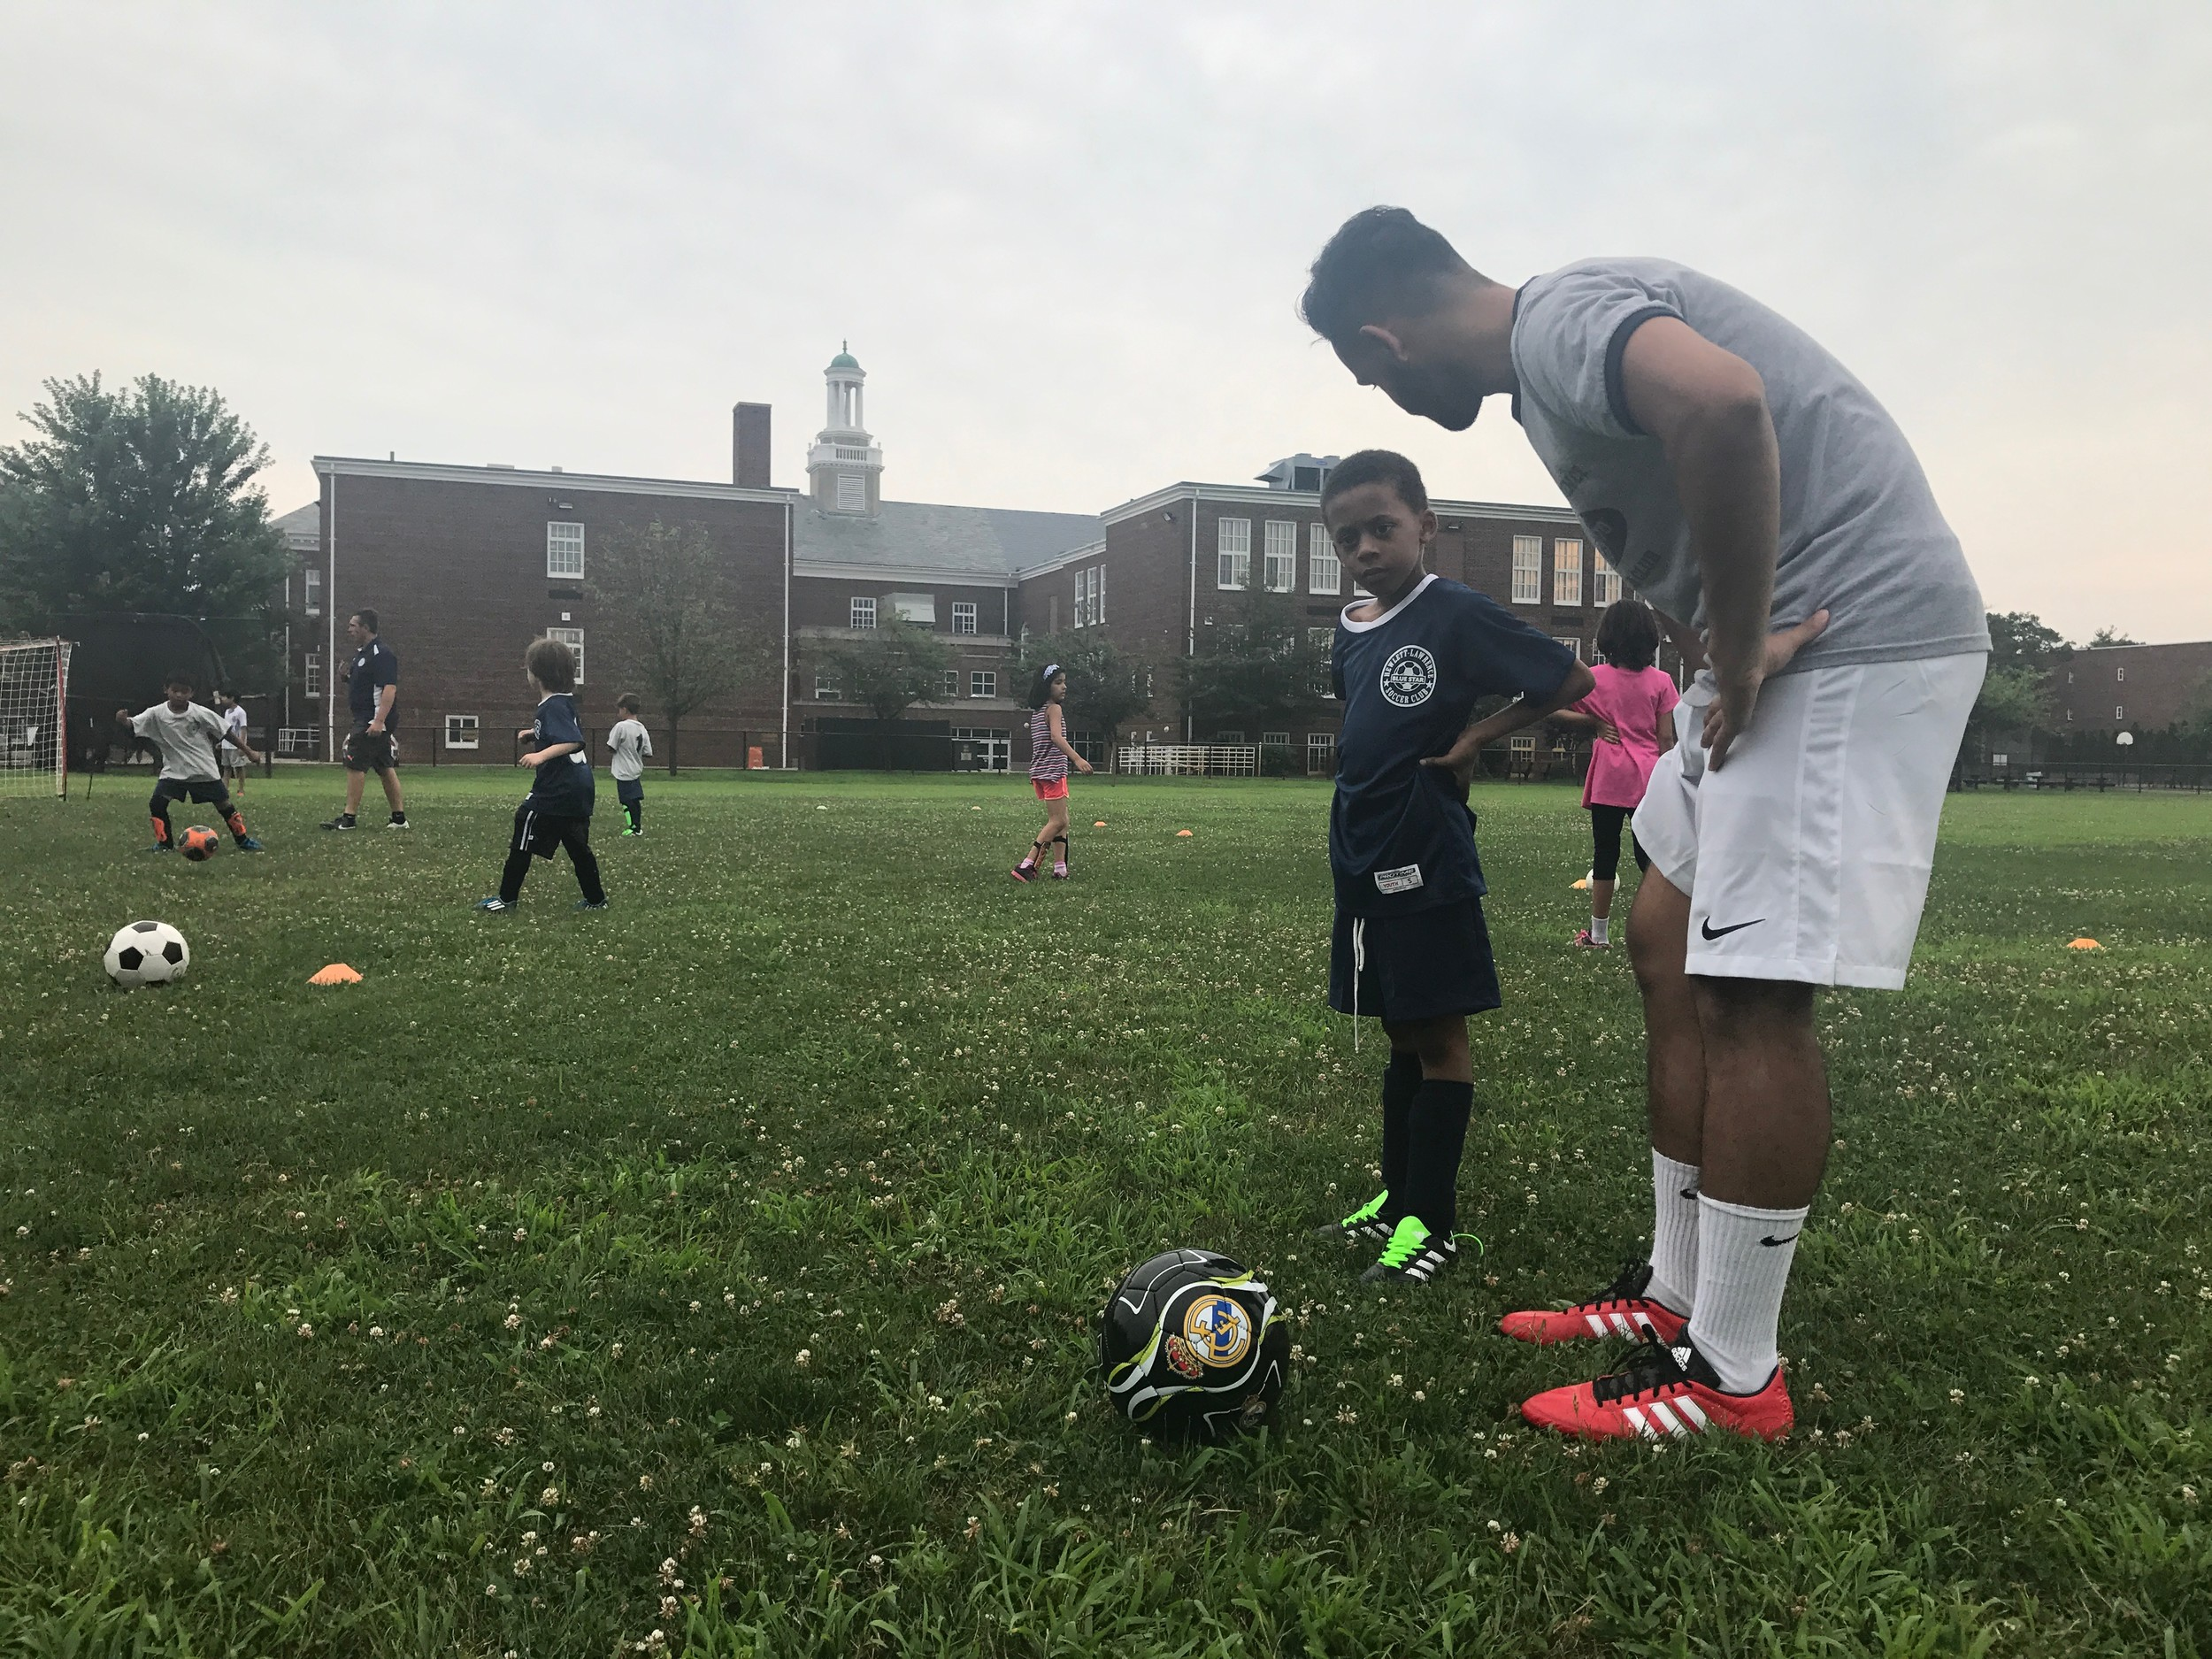 David Ramirez, who will be playing for Queens College this fall gave Roddy Perard, 6, advice on his passing technique.